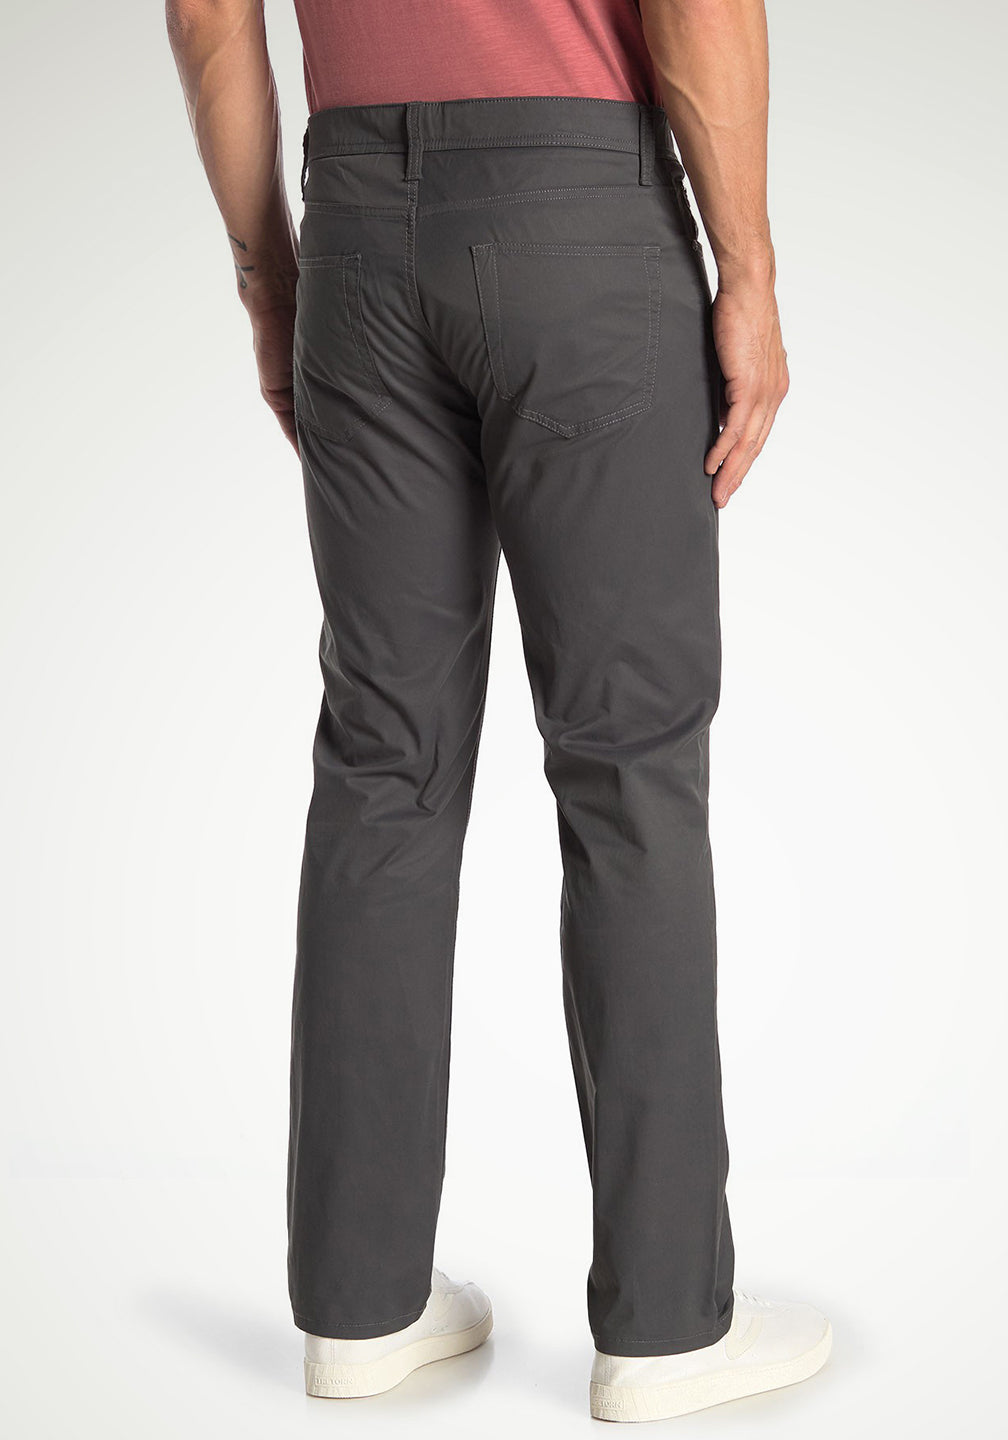 Back View Front View AIROTEC® PERFORMANCE 5-POCKET PANTS - WESTPORT ATHLETIC STRAIGHT FIT in Dark Shadow